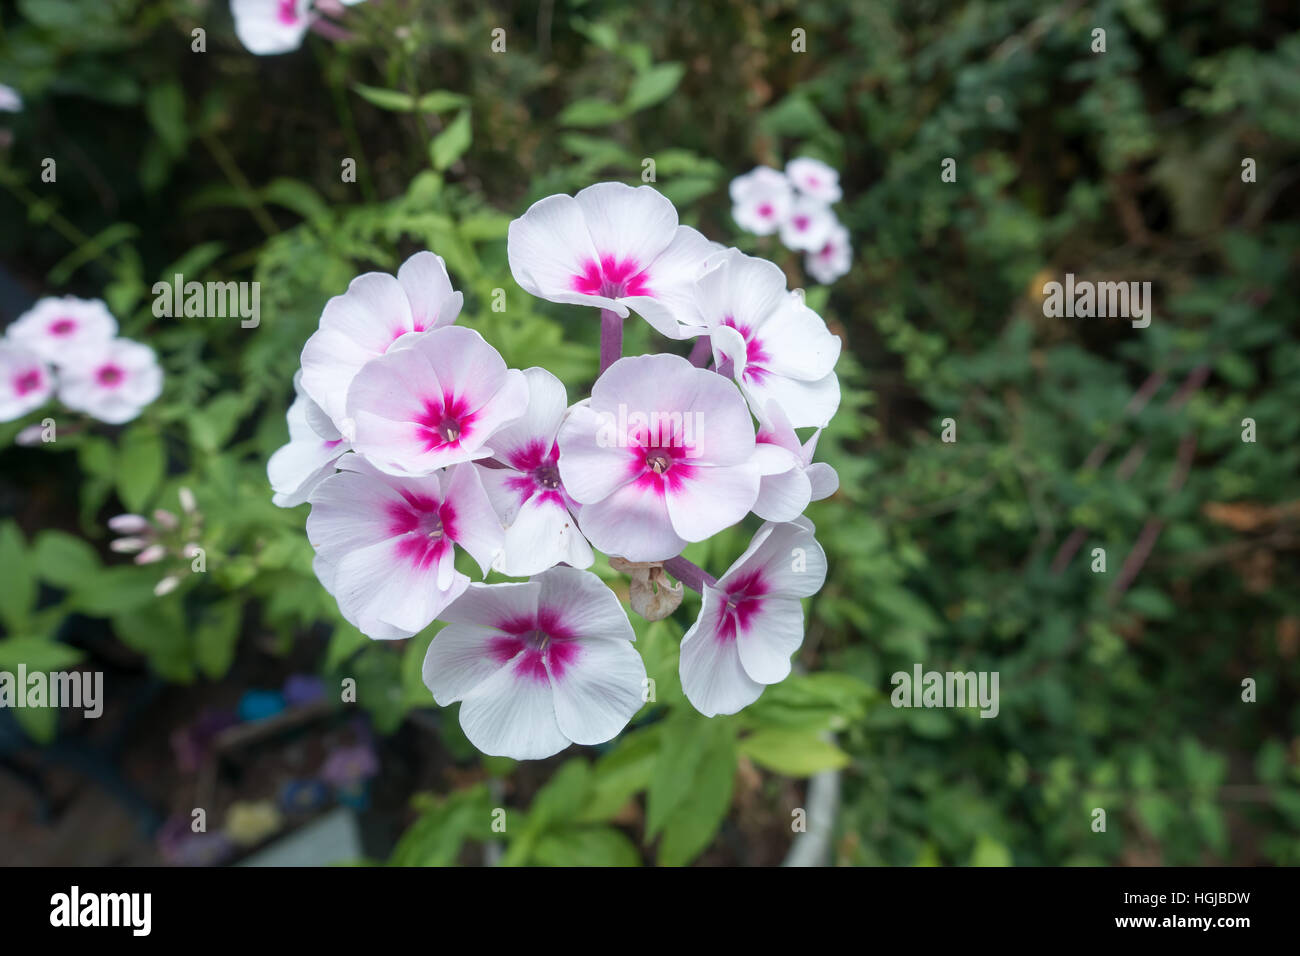 Small pink white flowers stock photos small pink white flowers closeup of a cluster of small pink and white flowers stock image mightylinksfo